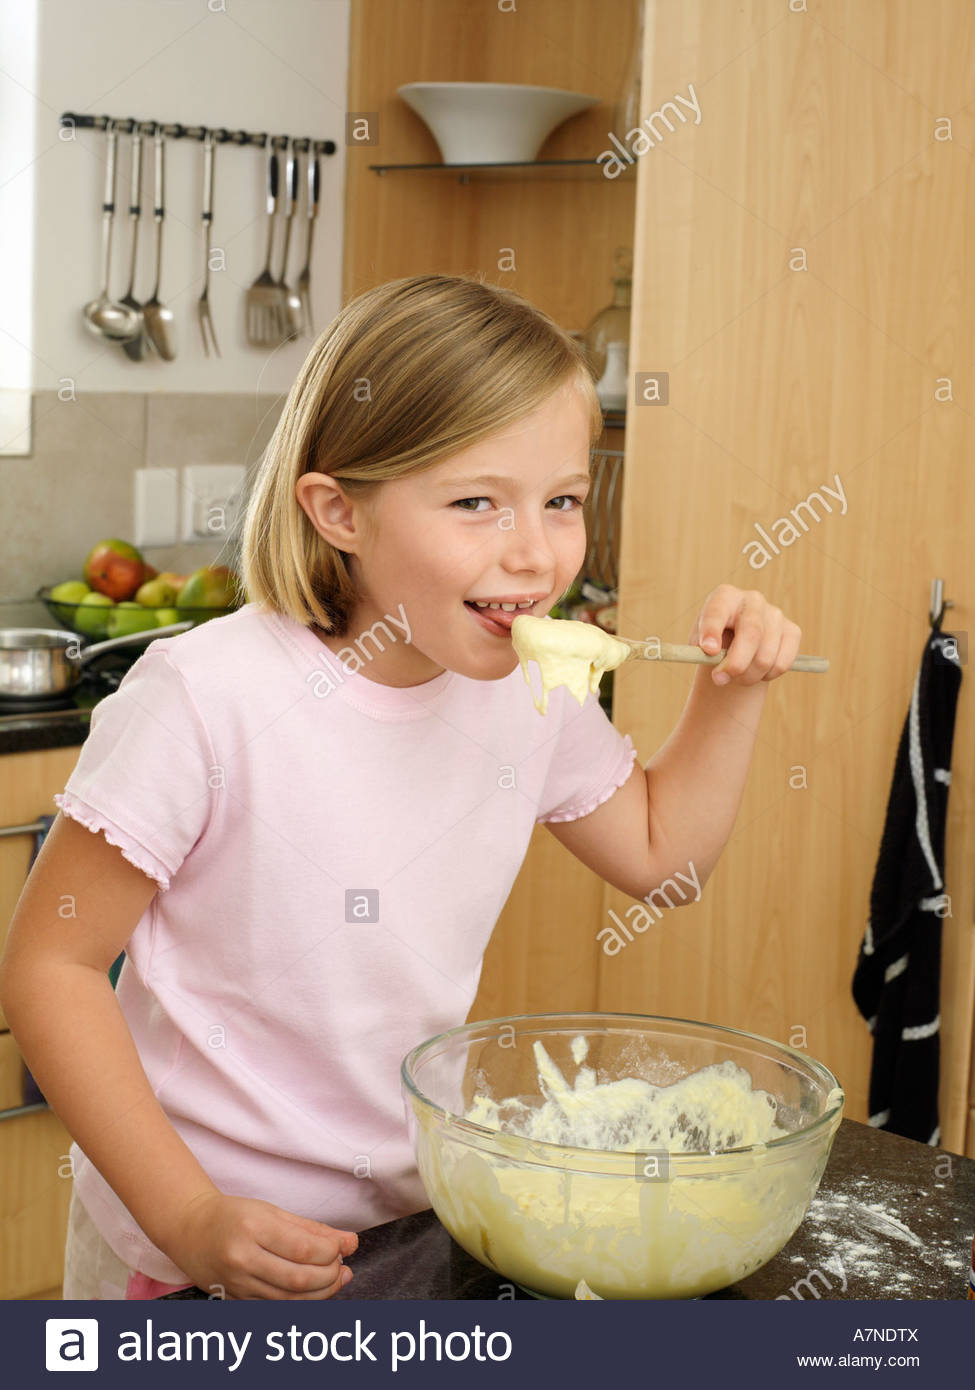 Is It Safe To Eat Cake Mix